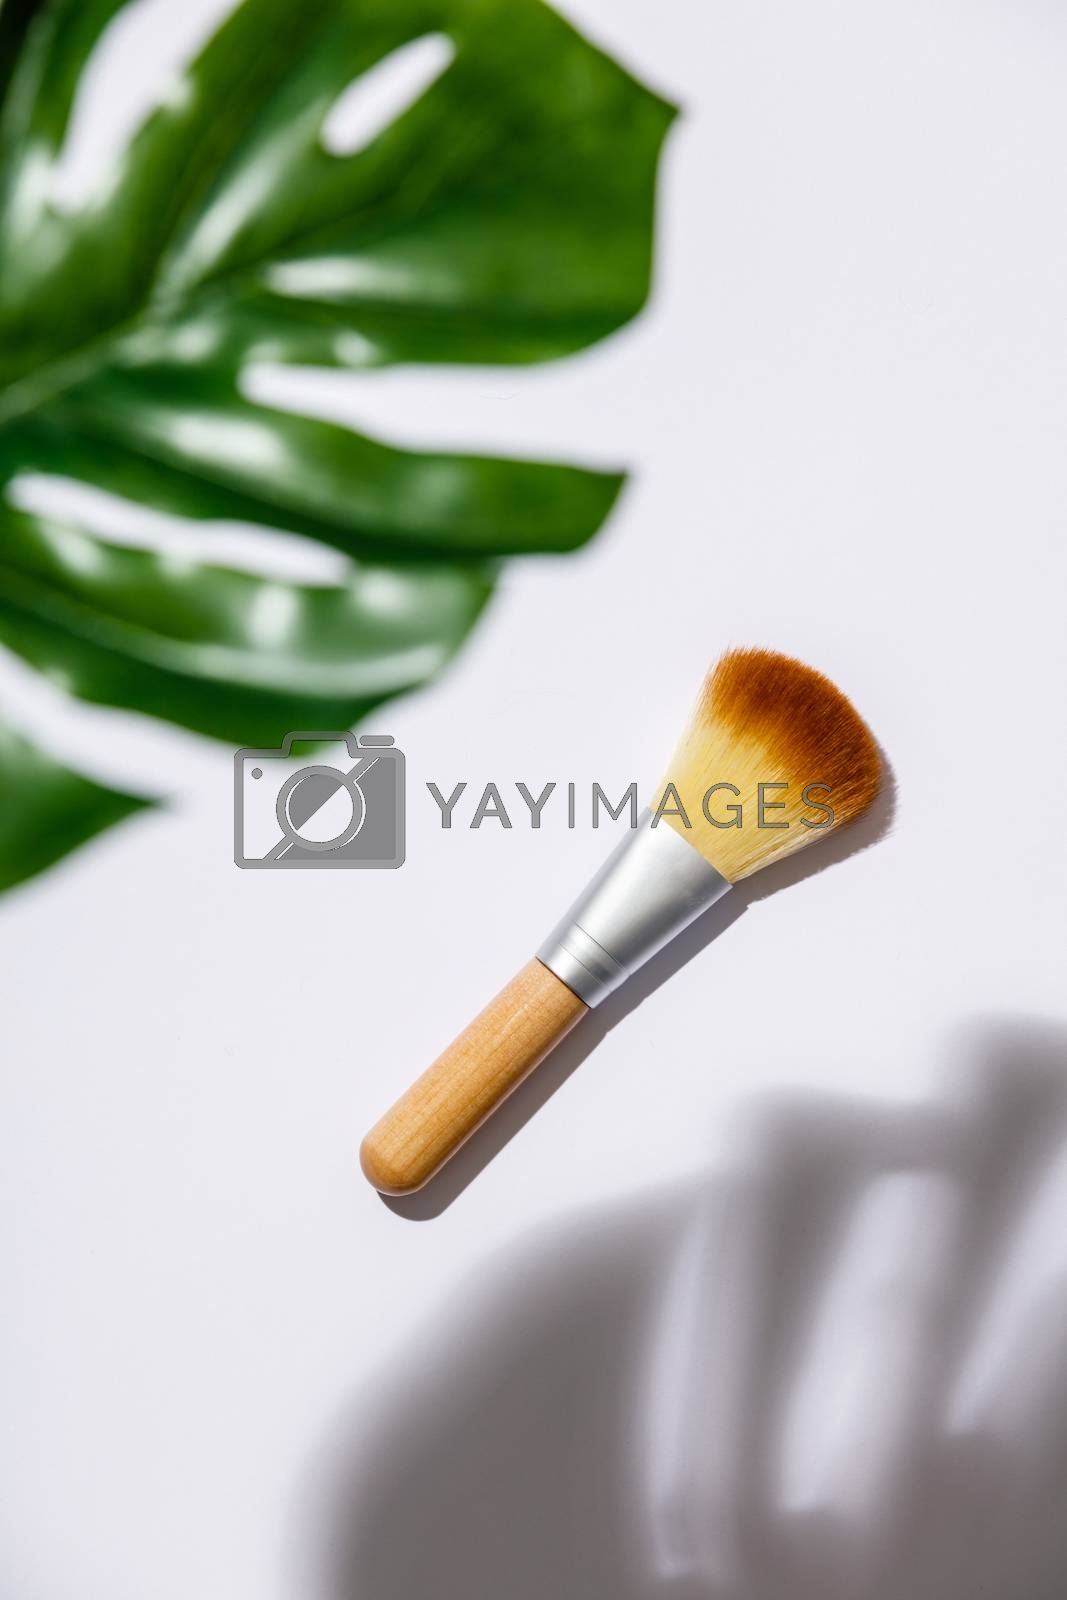 makeup brush and monstera leaves on a white background by klenova